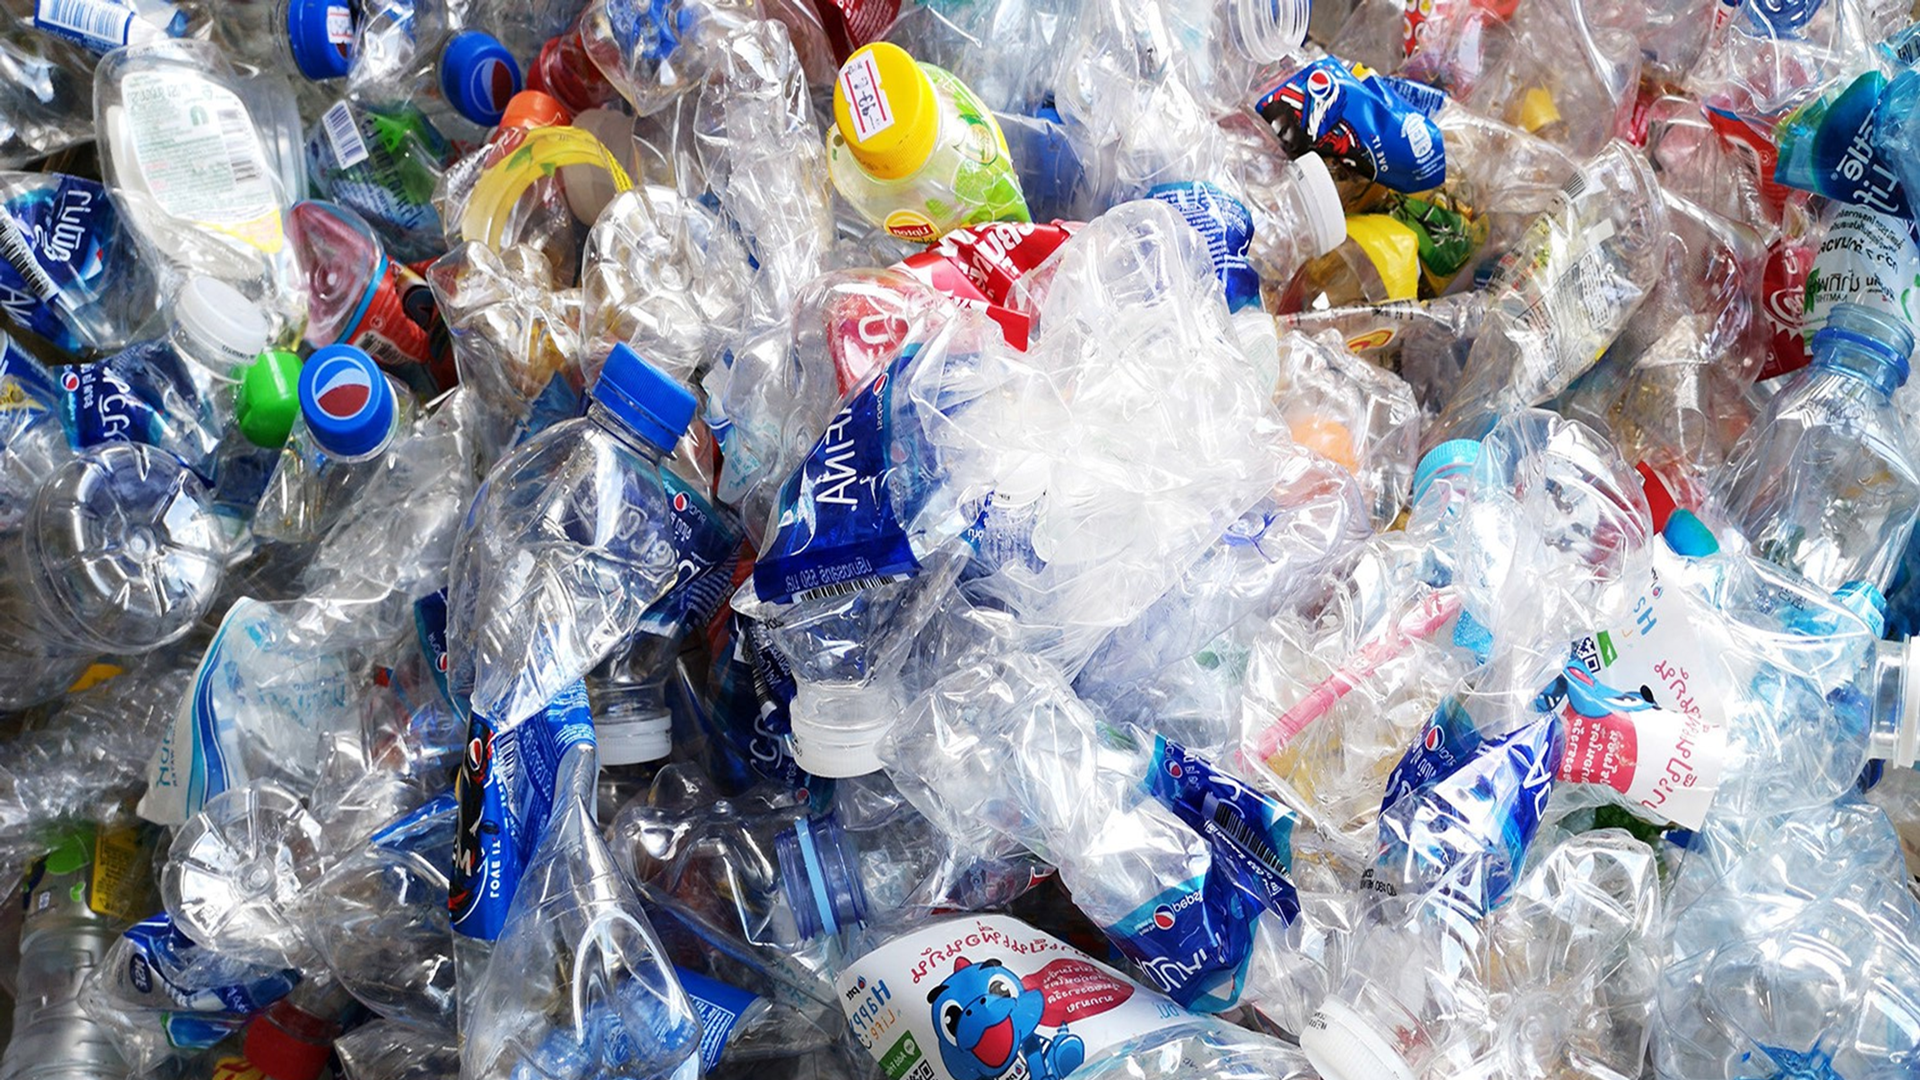 Study on prevention of plastic waste by multi-actor partnerships published